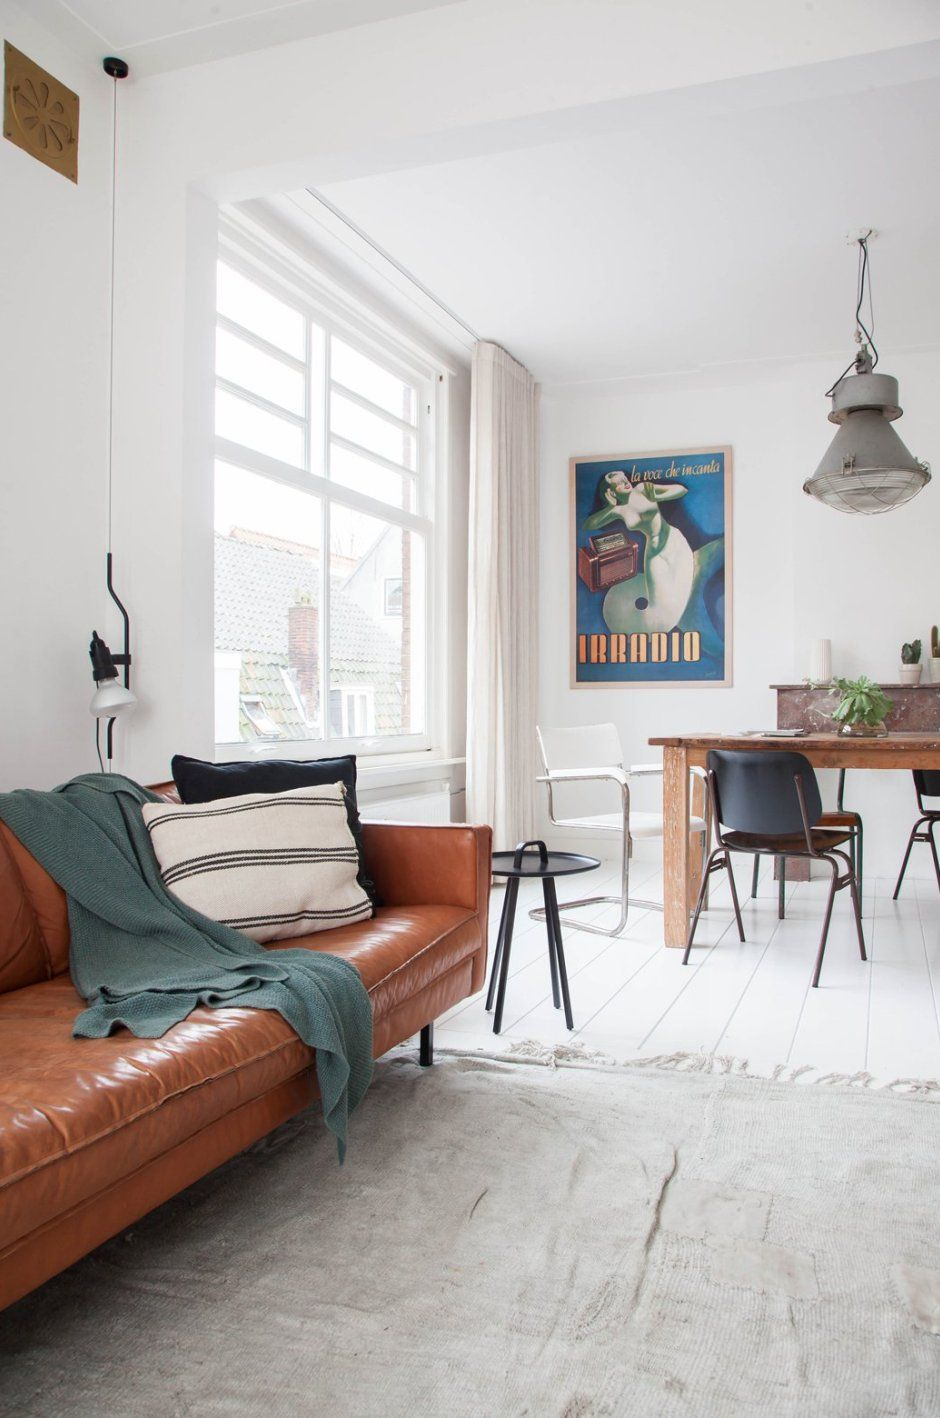 Home Tour: Cool, Calm and Collected Bachelor Pad | Pinterest